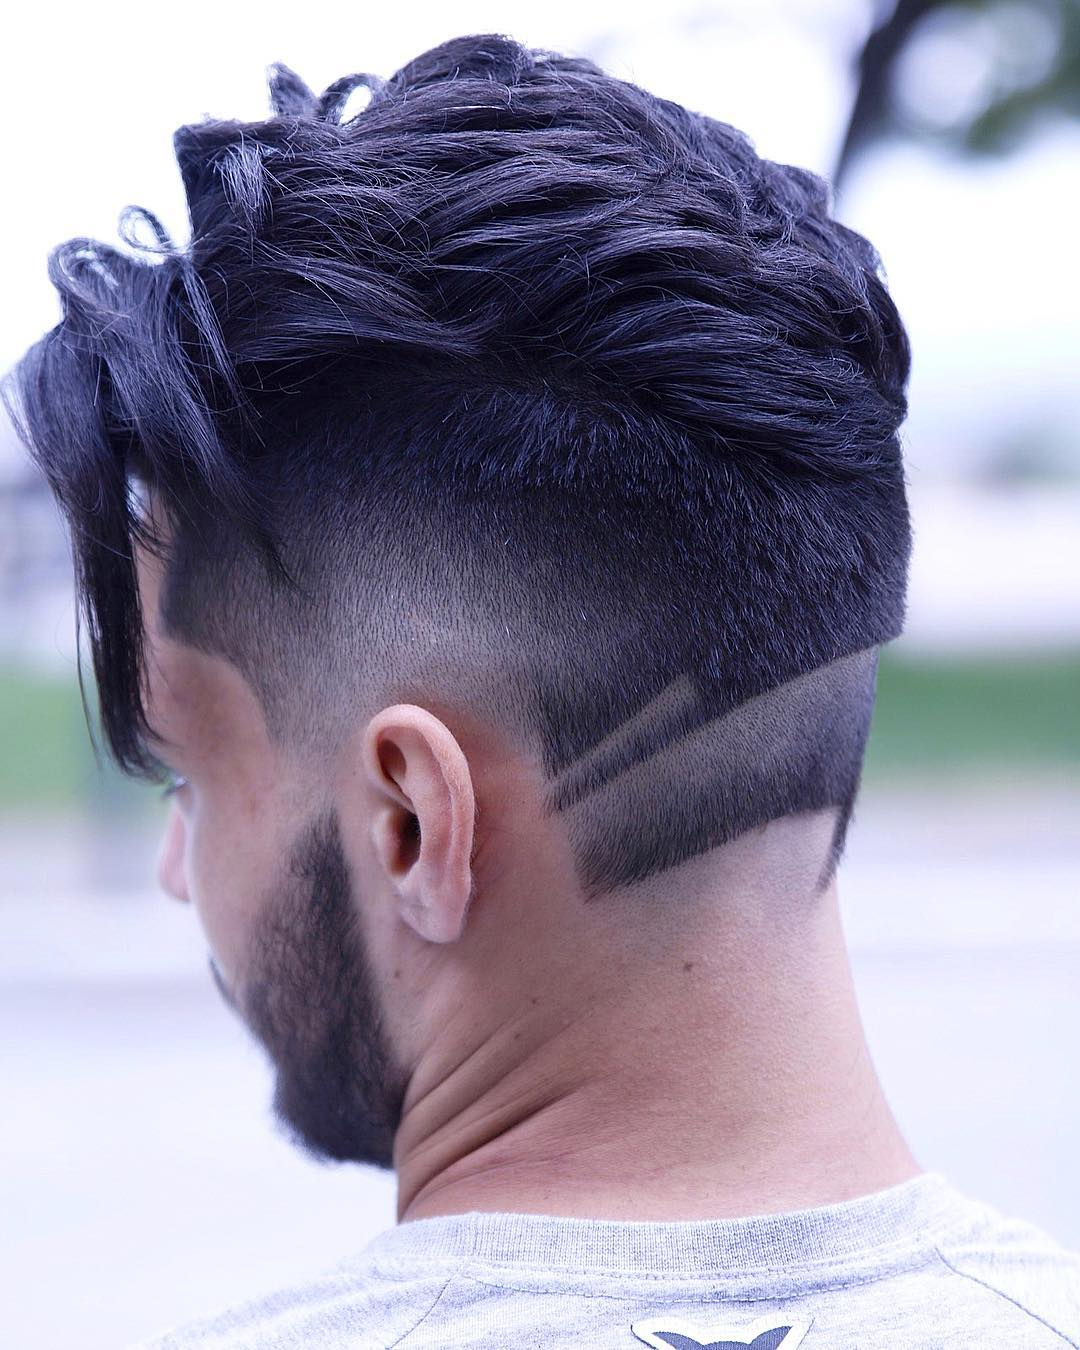 Neckline hair design fade haircut and disconnected beard